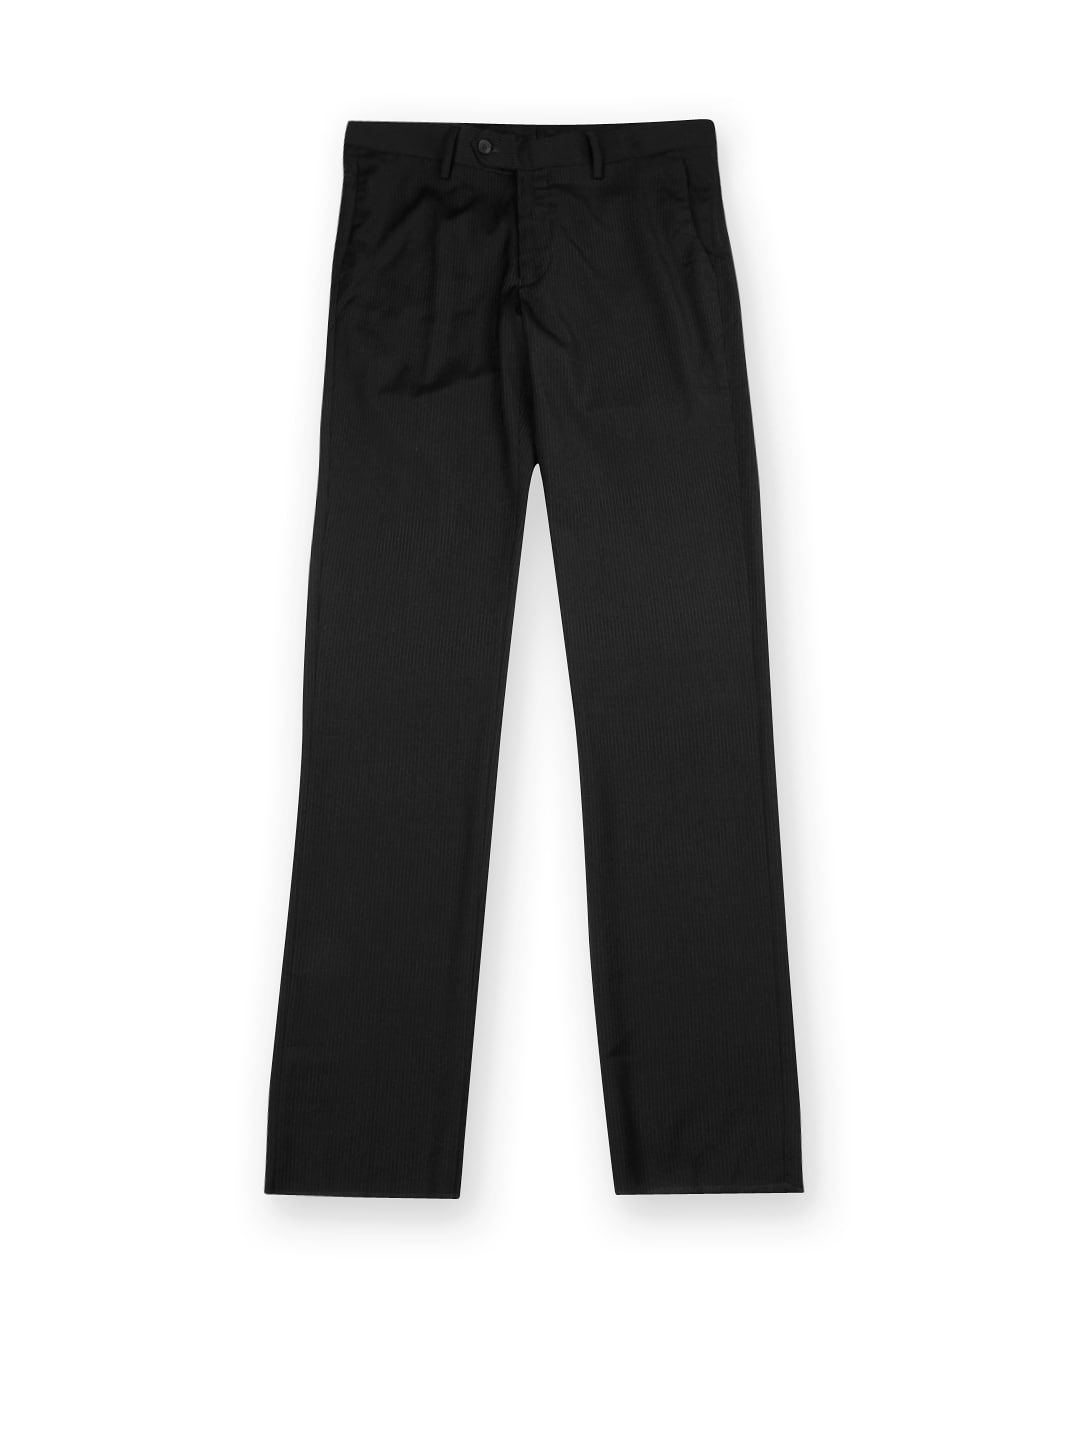 U.S. Polo Assn. Men Black Striped Tapered Fit Formal Trousers